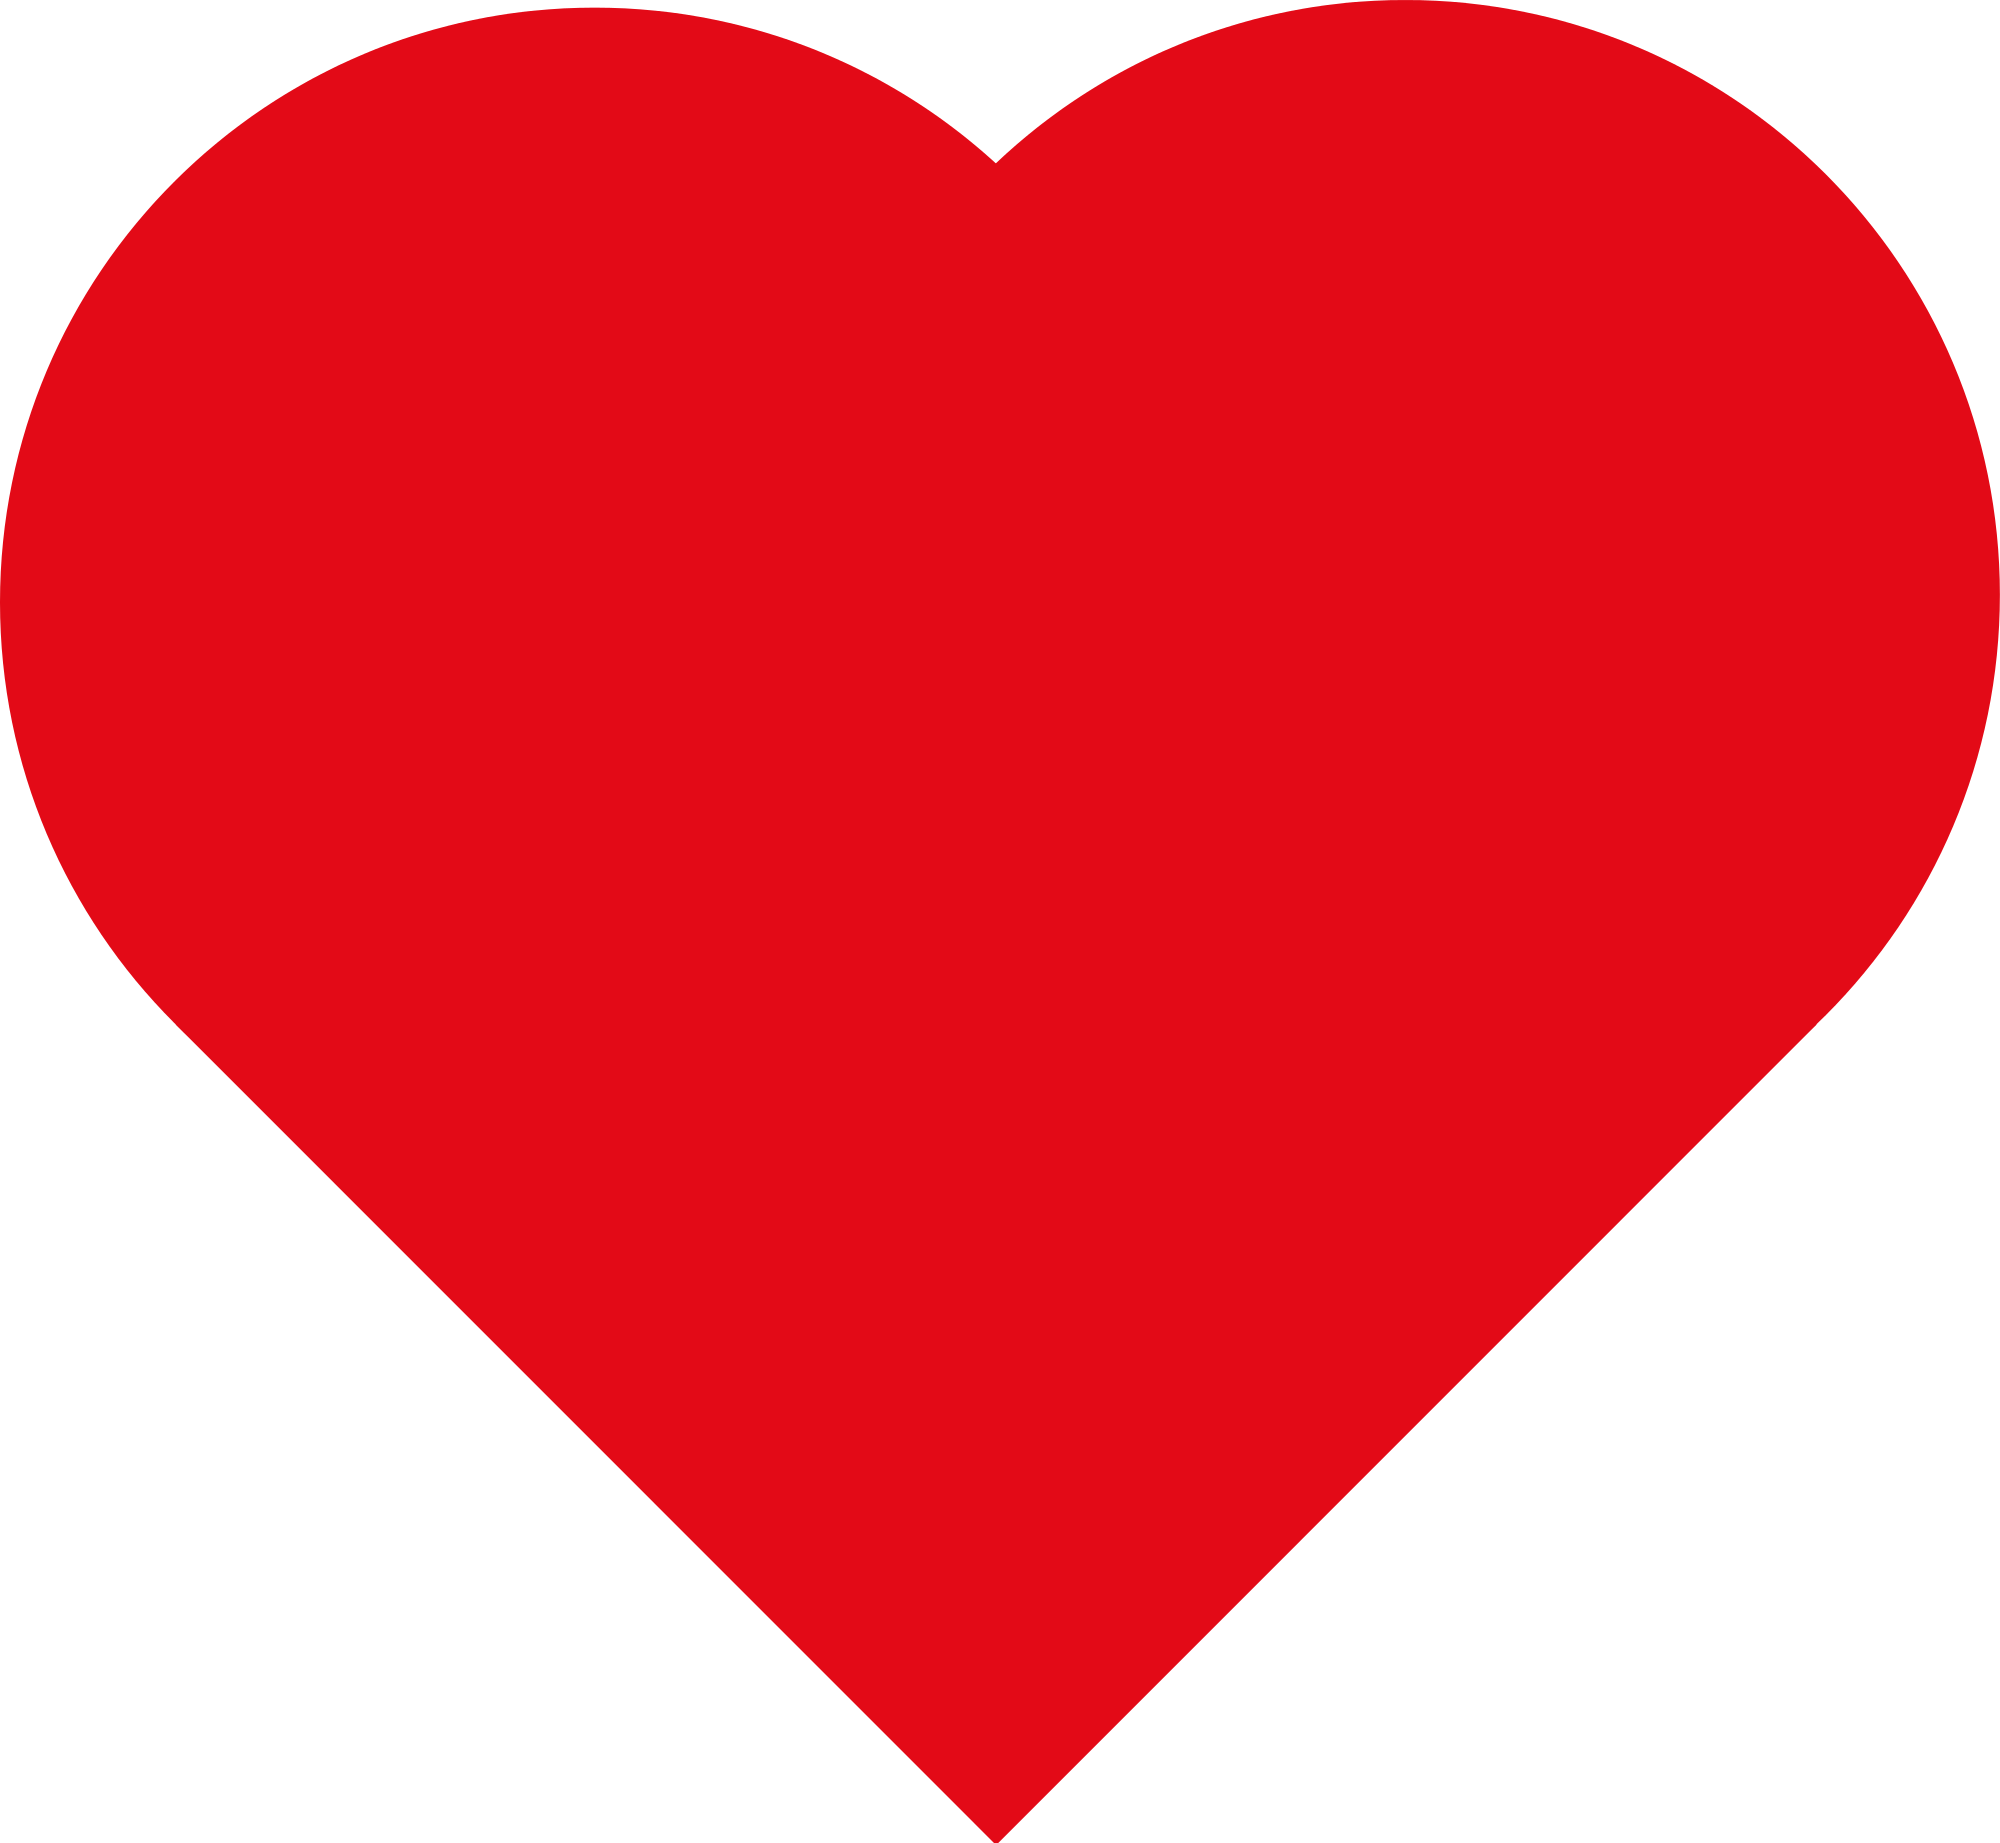 Love Wallpaper Png : Love Symbol Png - clipArt Best